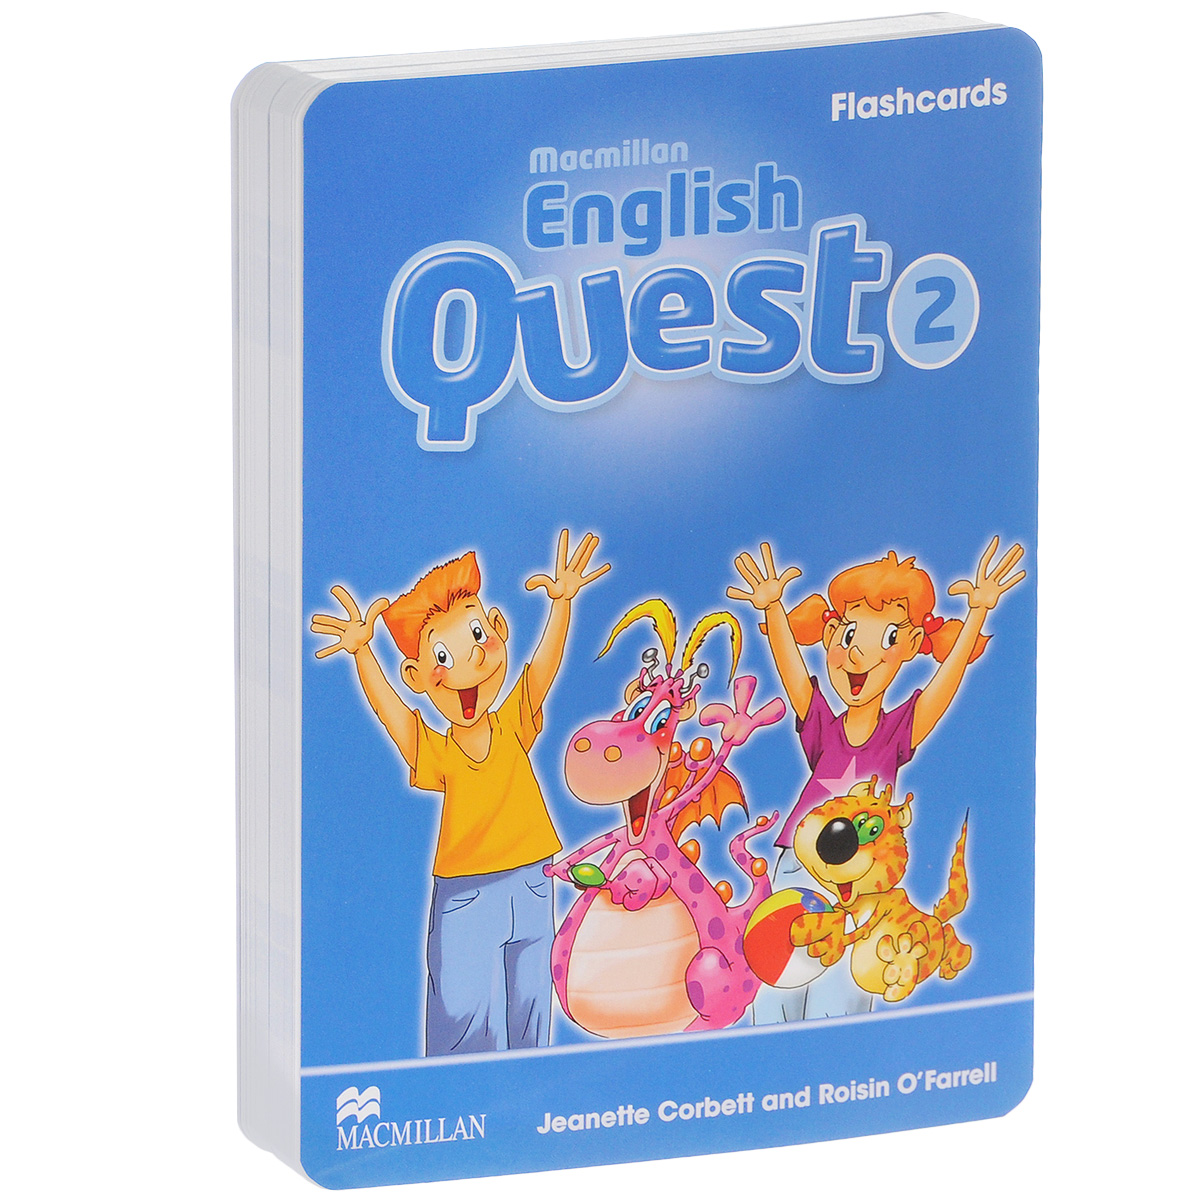 Macmillan English Quest 2: Flashcards 123 flashcards